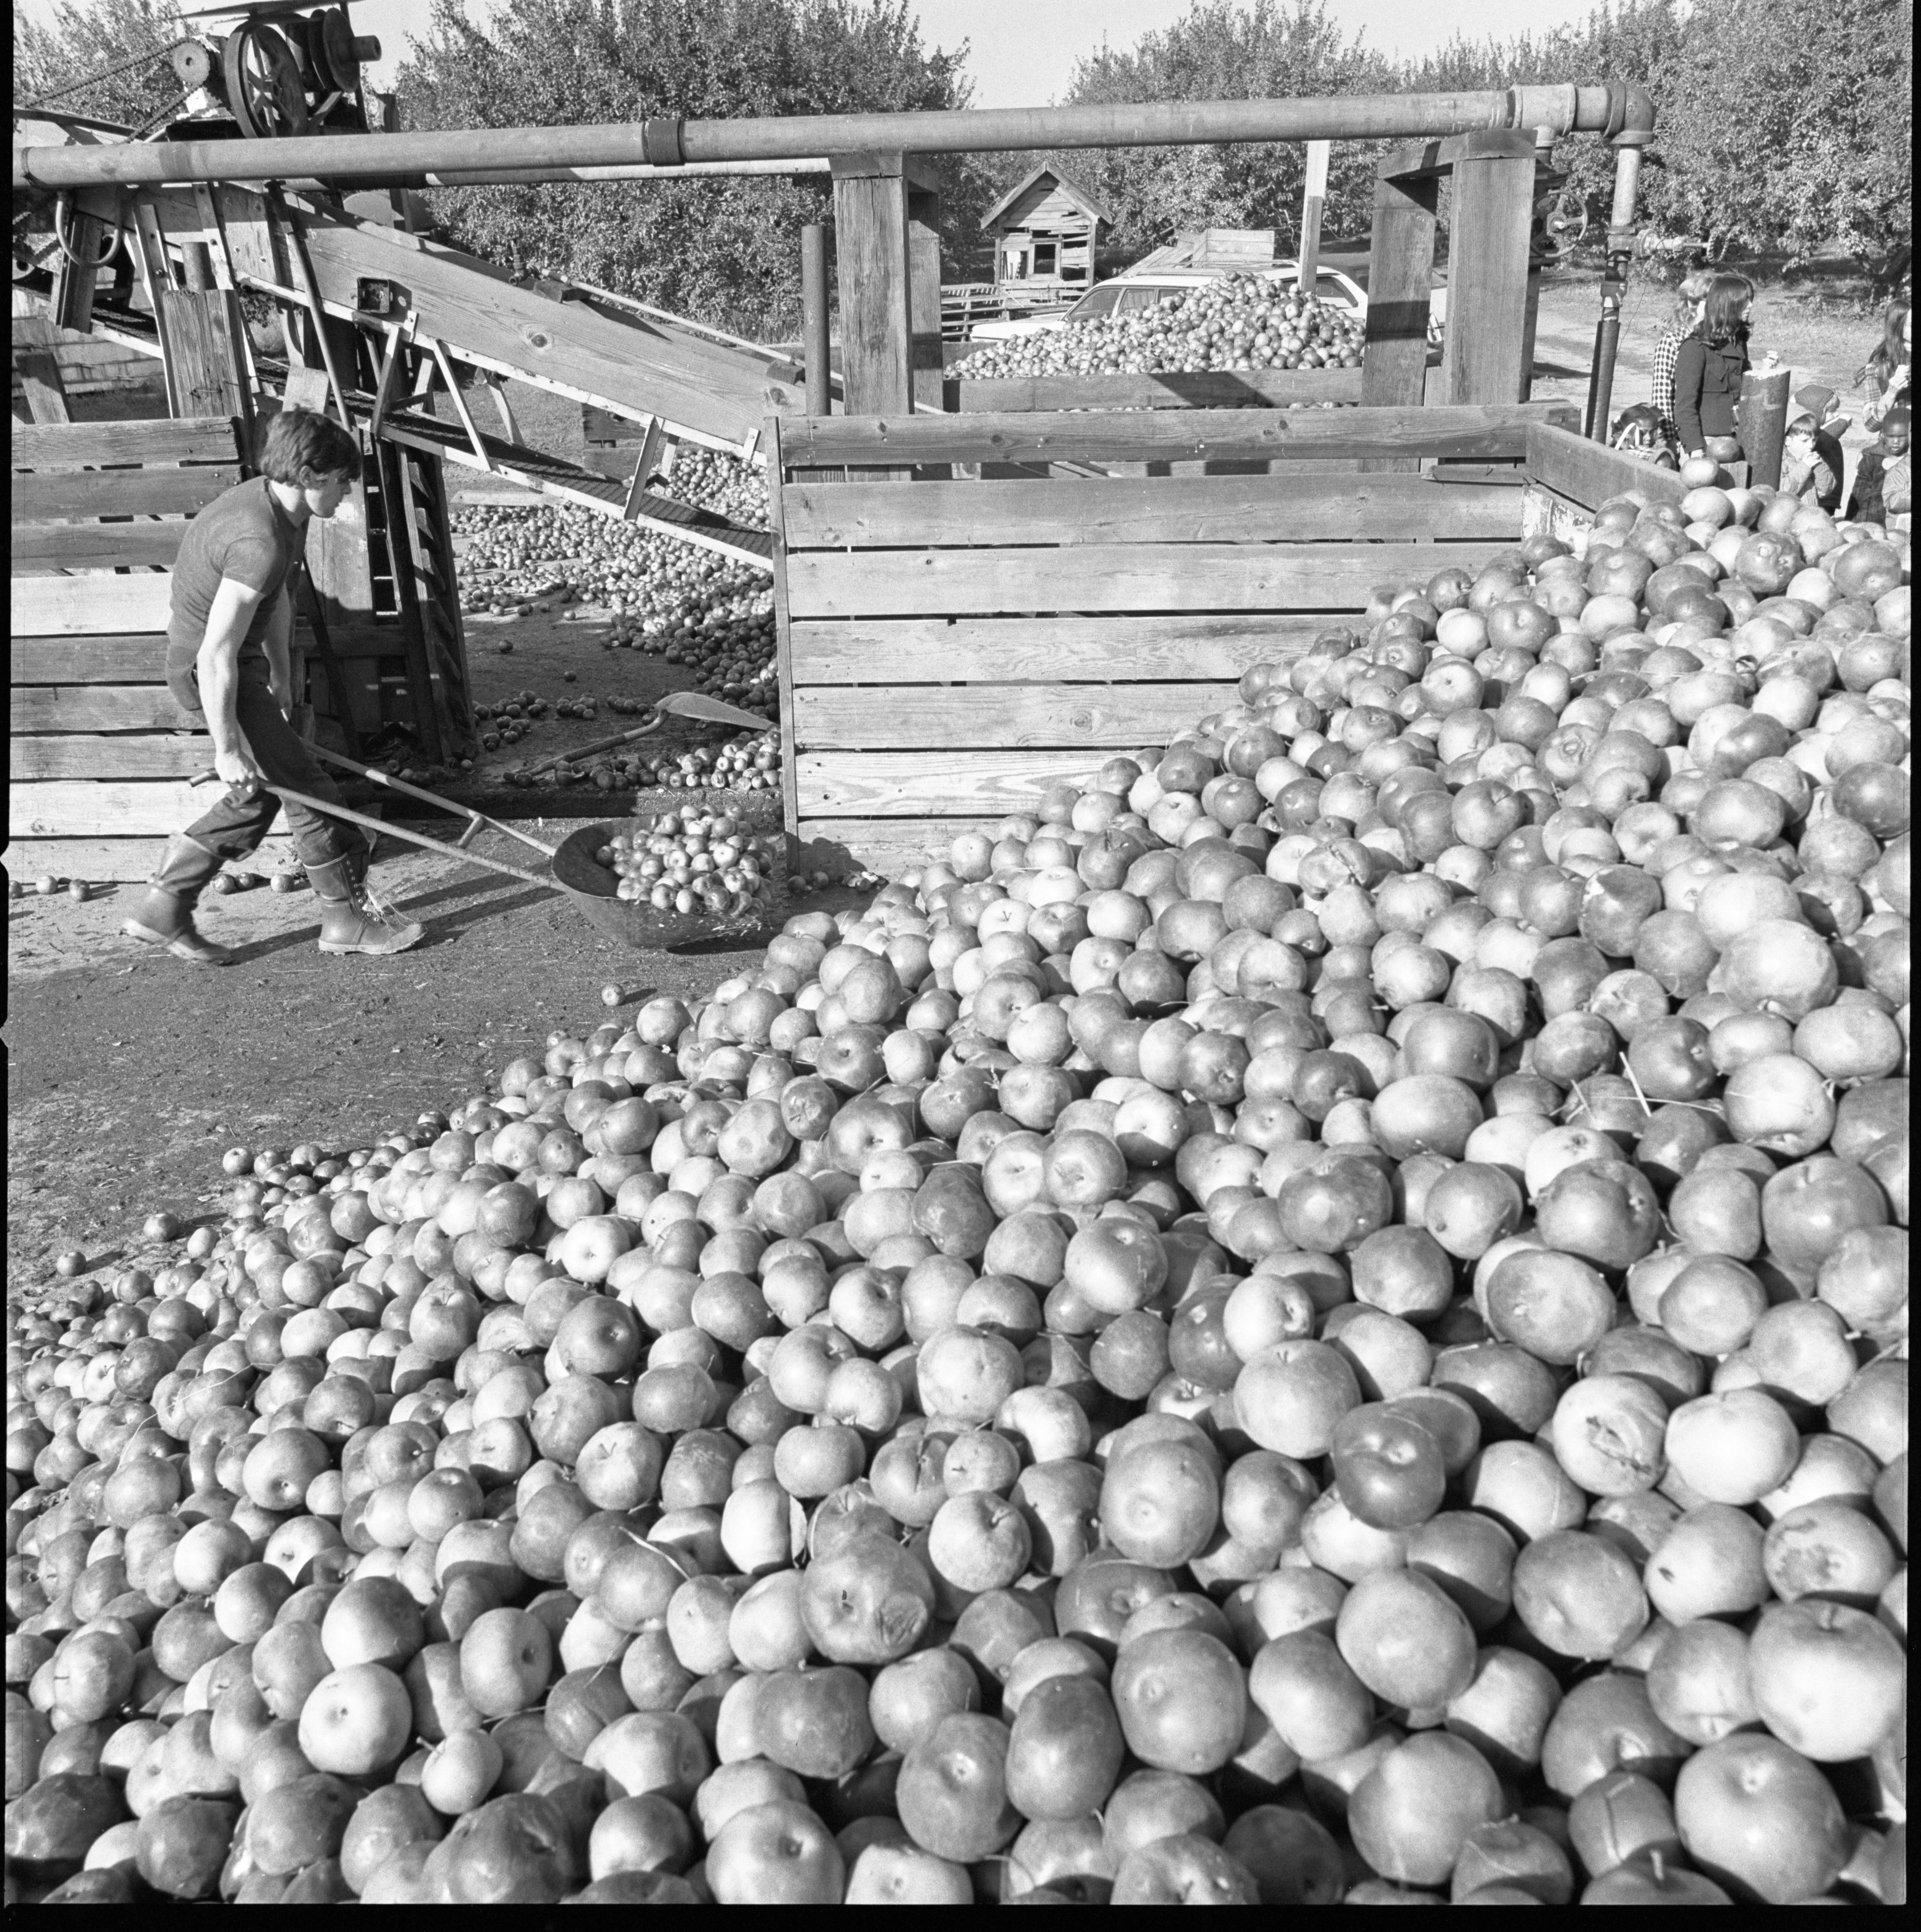 Apples Destined To Become Vinegar Are Shoveled Into Large Containers At Wiard's Orchards, October 1974 image